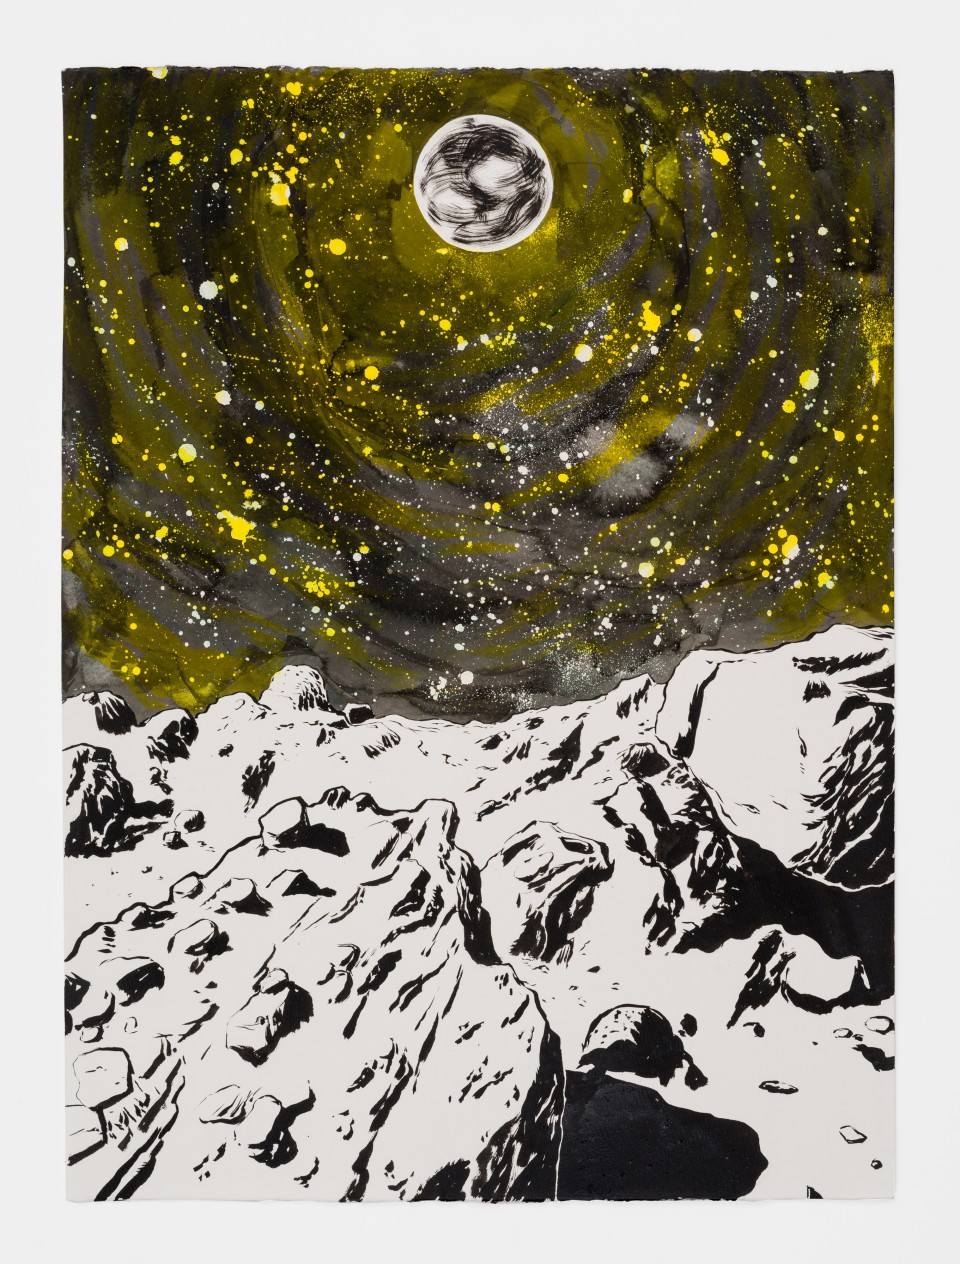 Image: Mark Thomas Gibson  They Called It Earth, 2020  ink on paper  30 x 22 inches (76.2 x 55.9 cm)